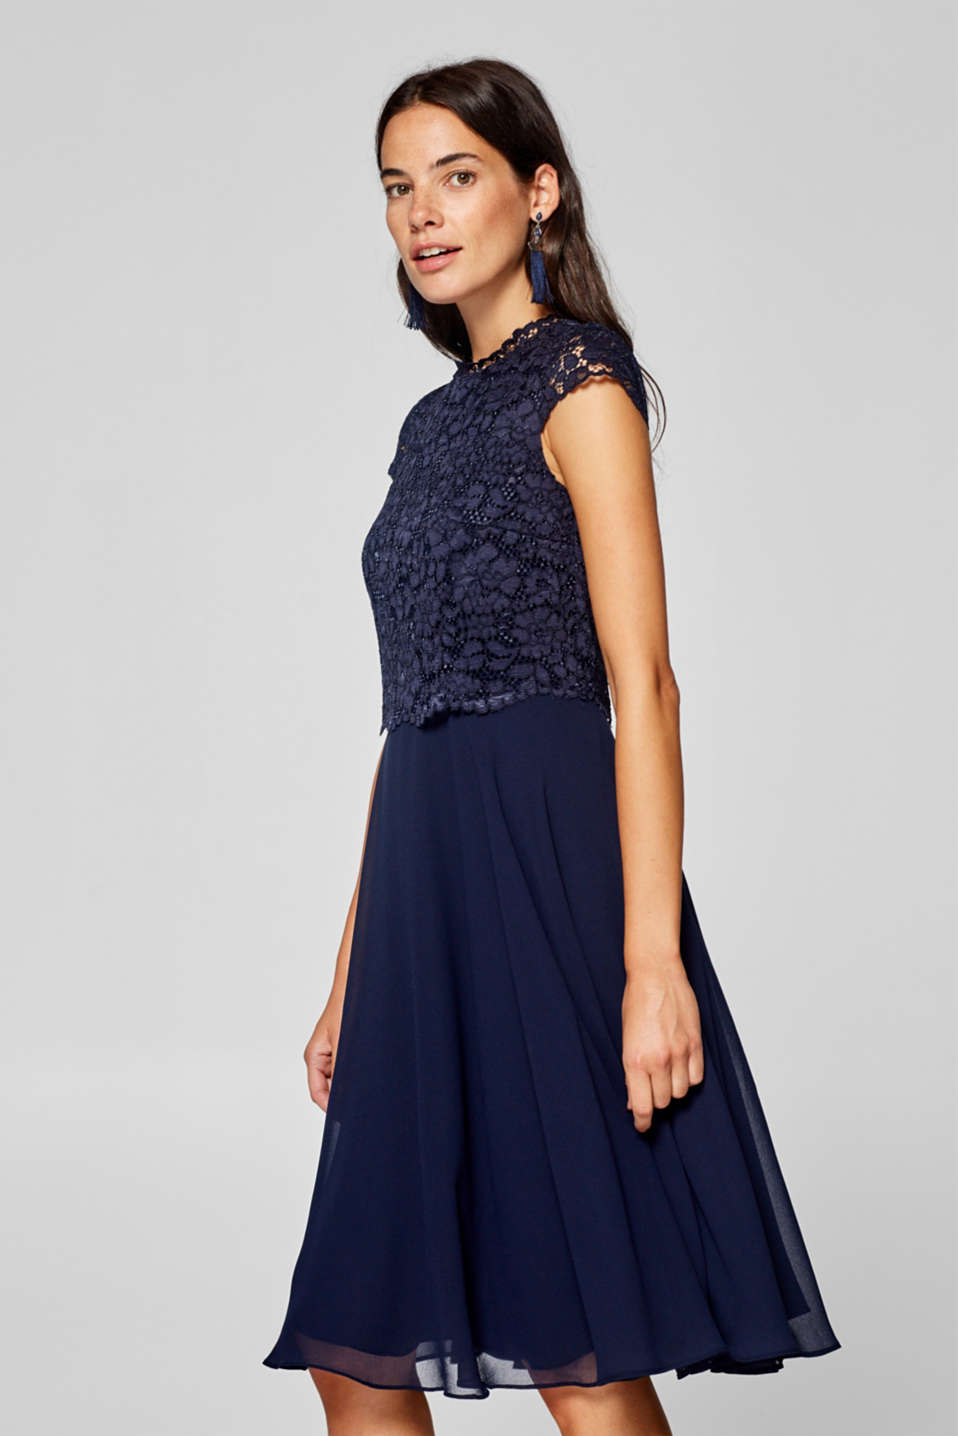 Esprit - Chiffon dress with a lace top